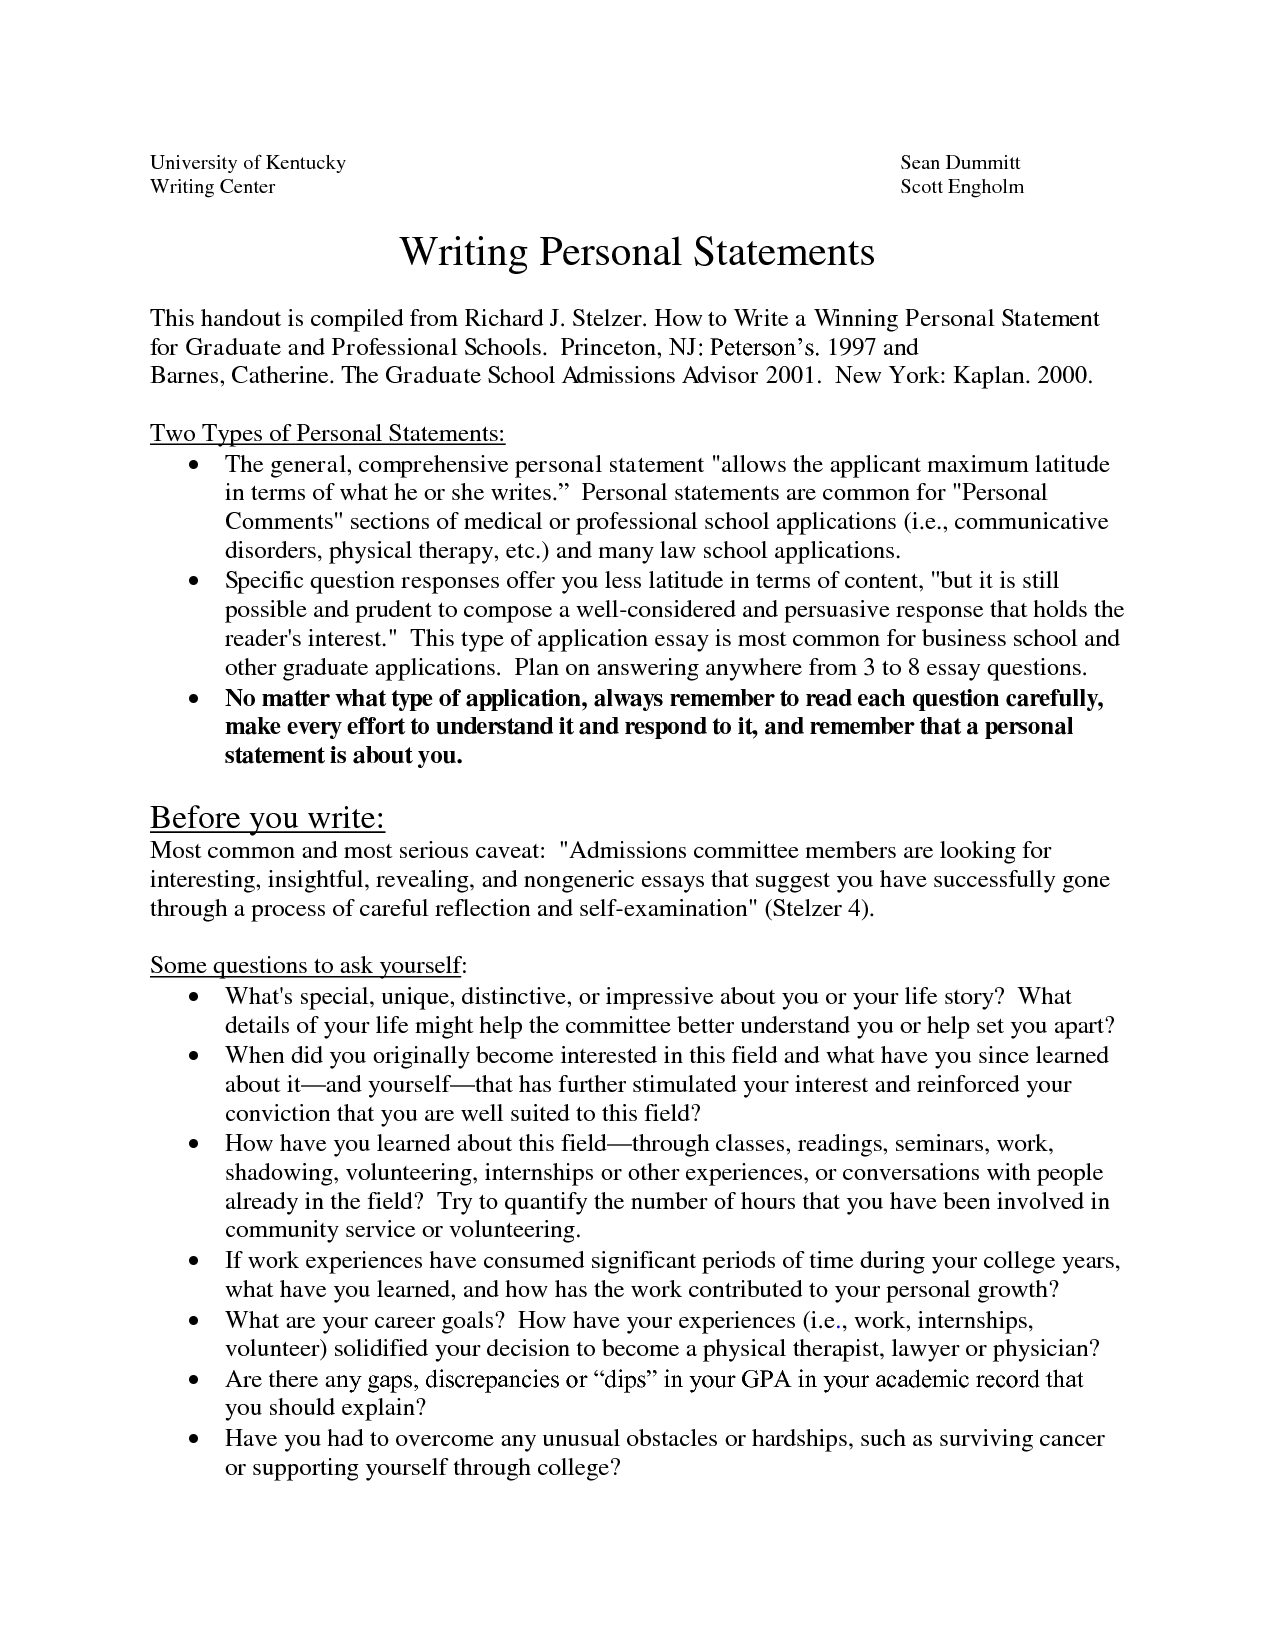 Sample essay for graduate school